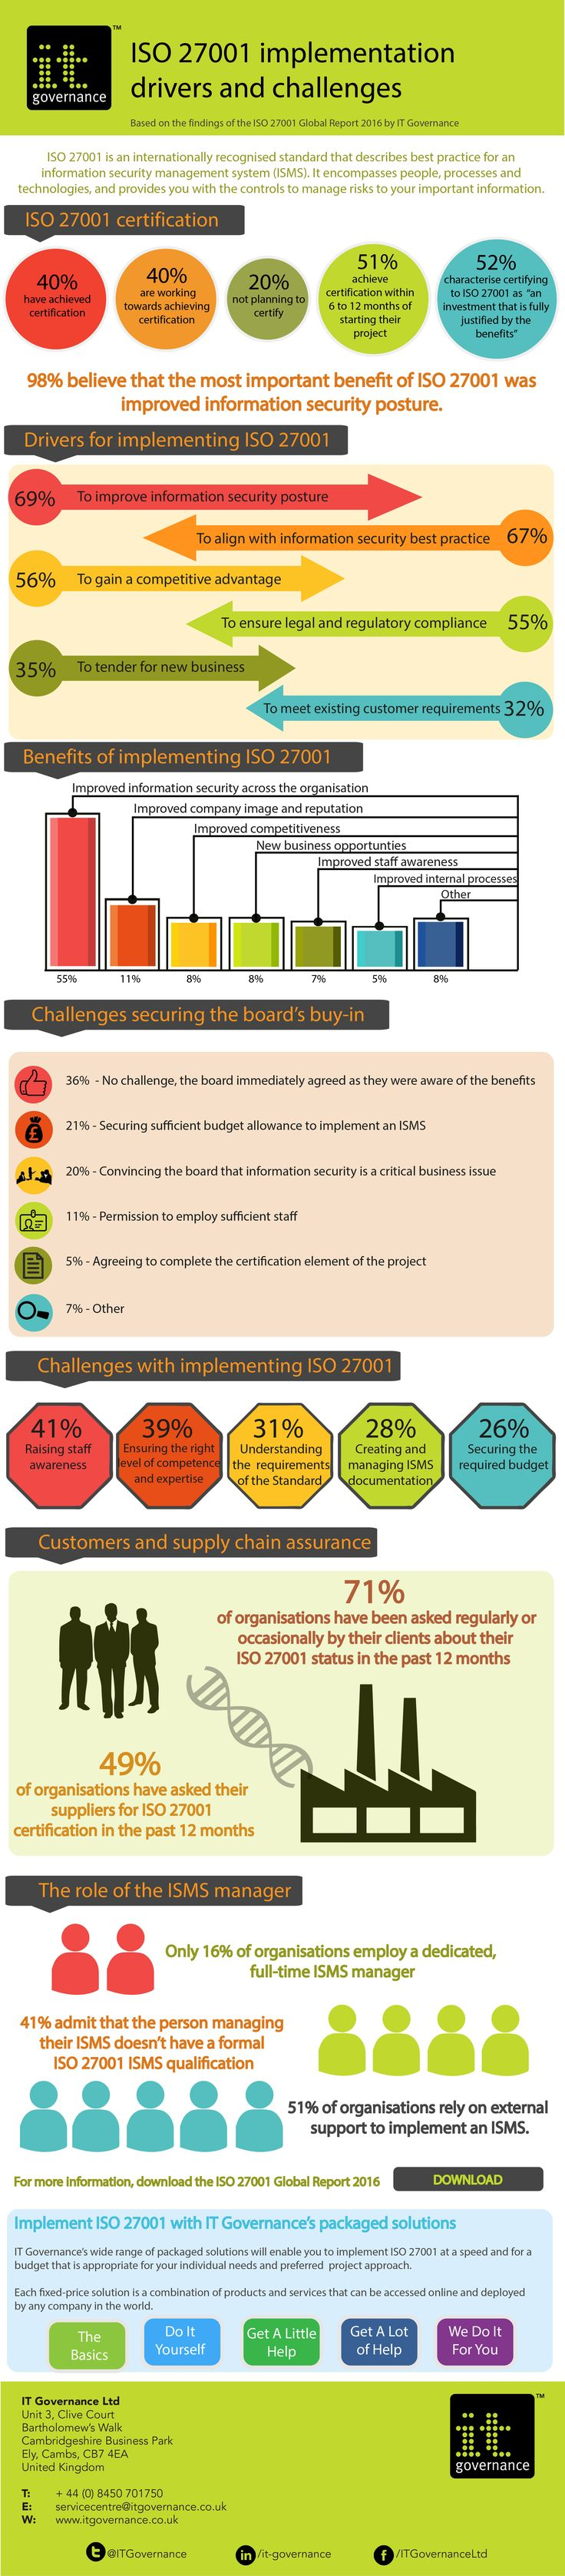 Infographic: ISO 27001 implementation drivers and challenges